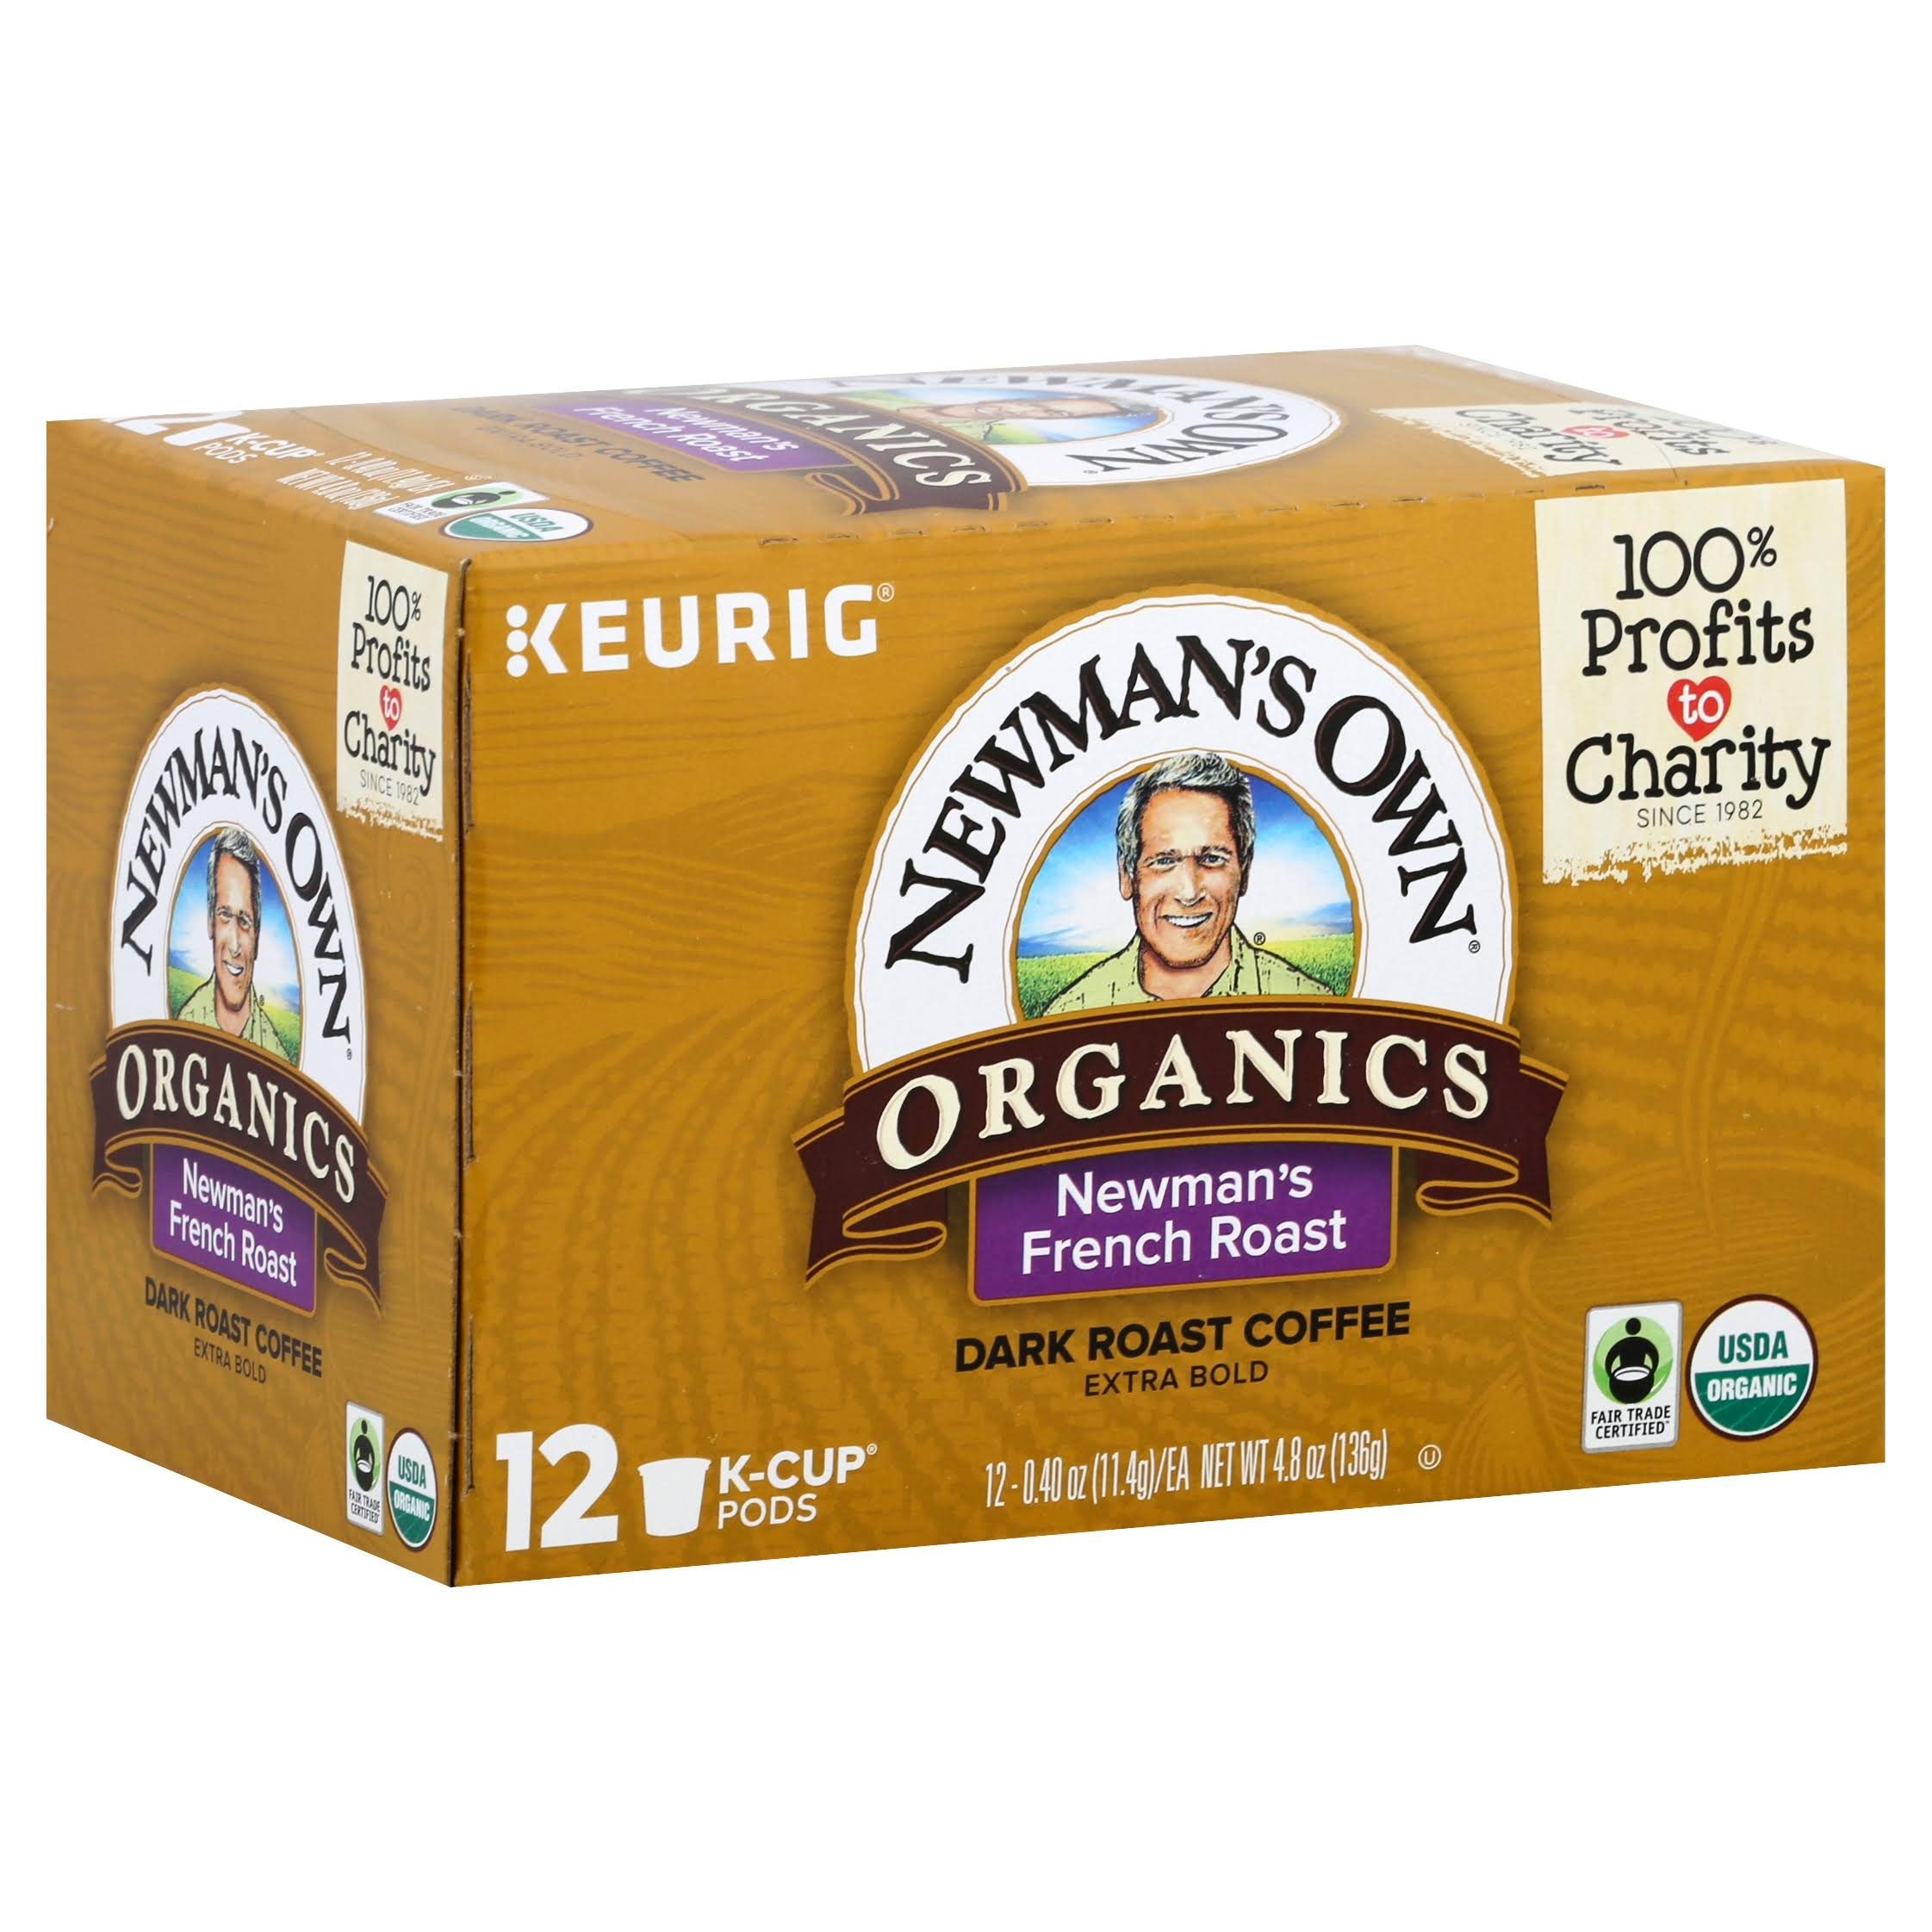 Newmans Own Keurig Organics Coffee, Dark Roast, Newman's French Roast, K-Cup Pods - 12 pack, 0.40 oz pods